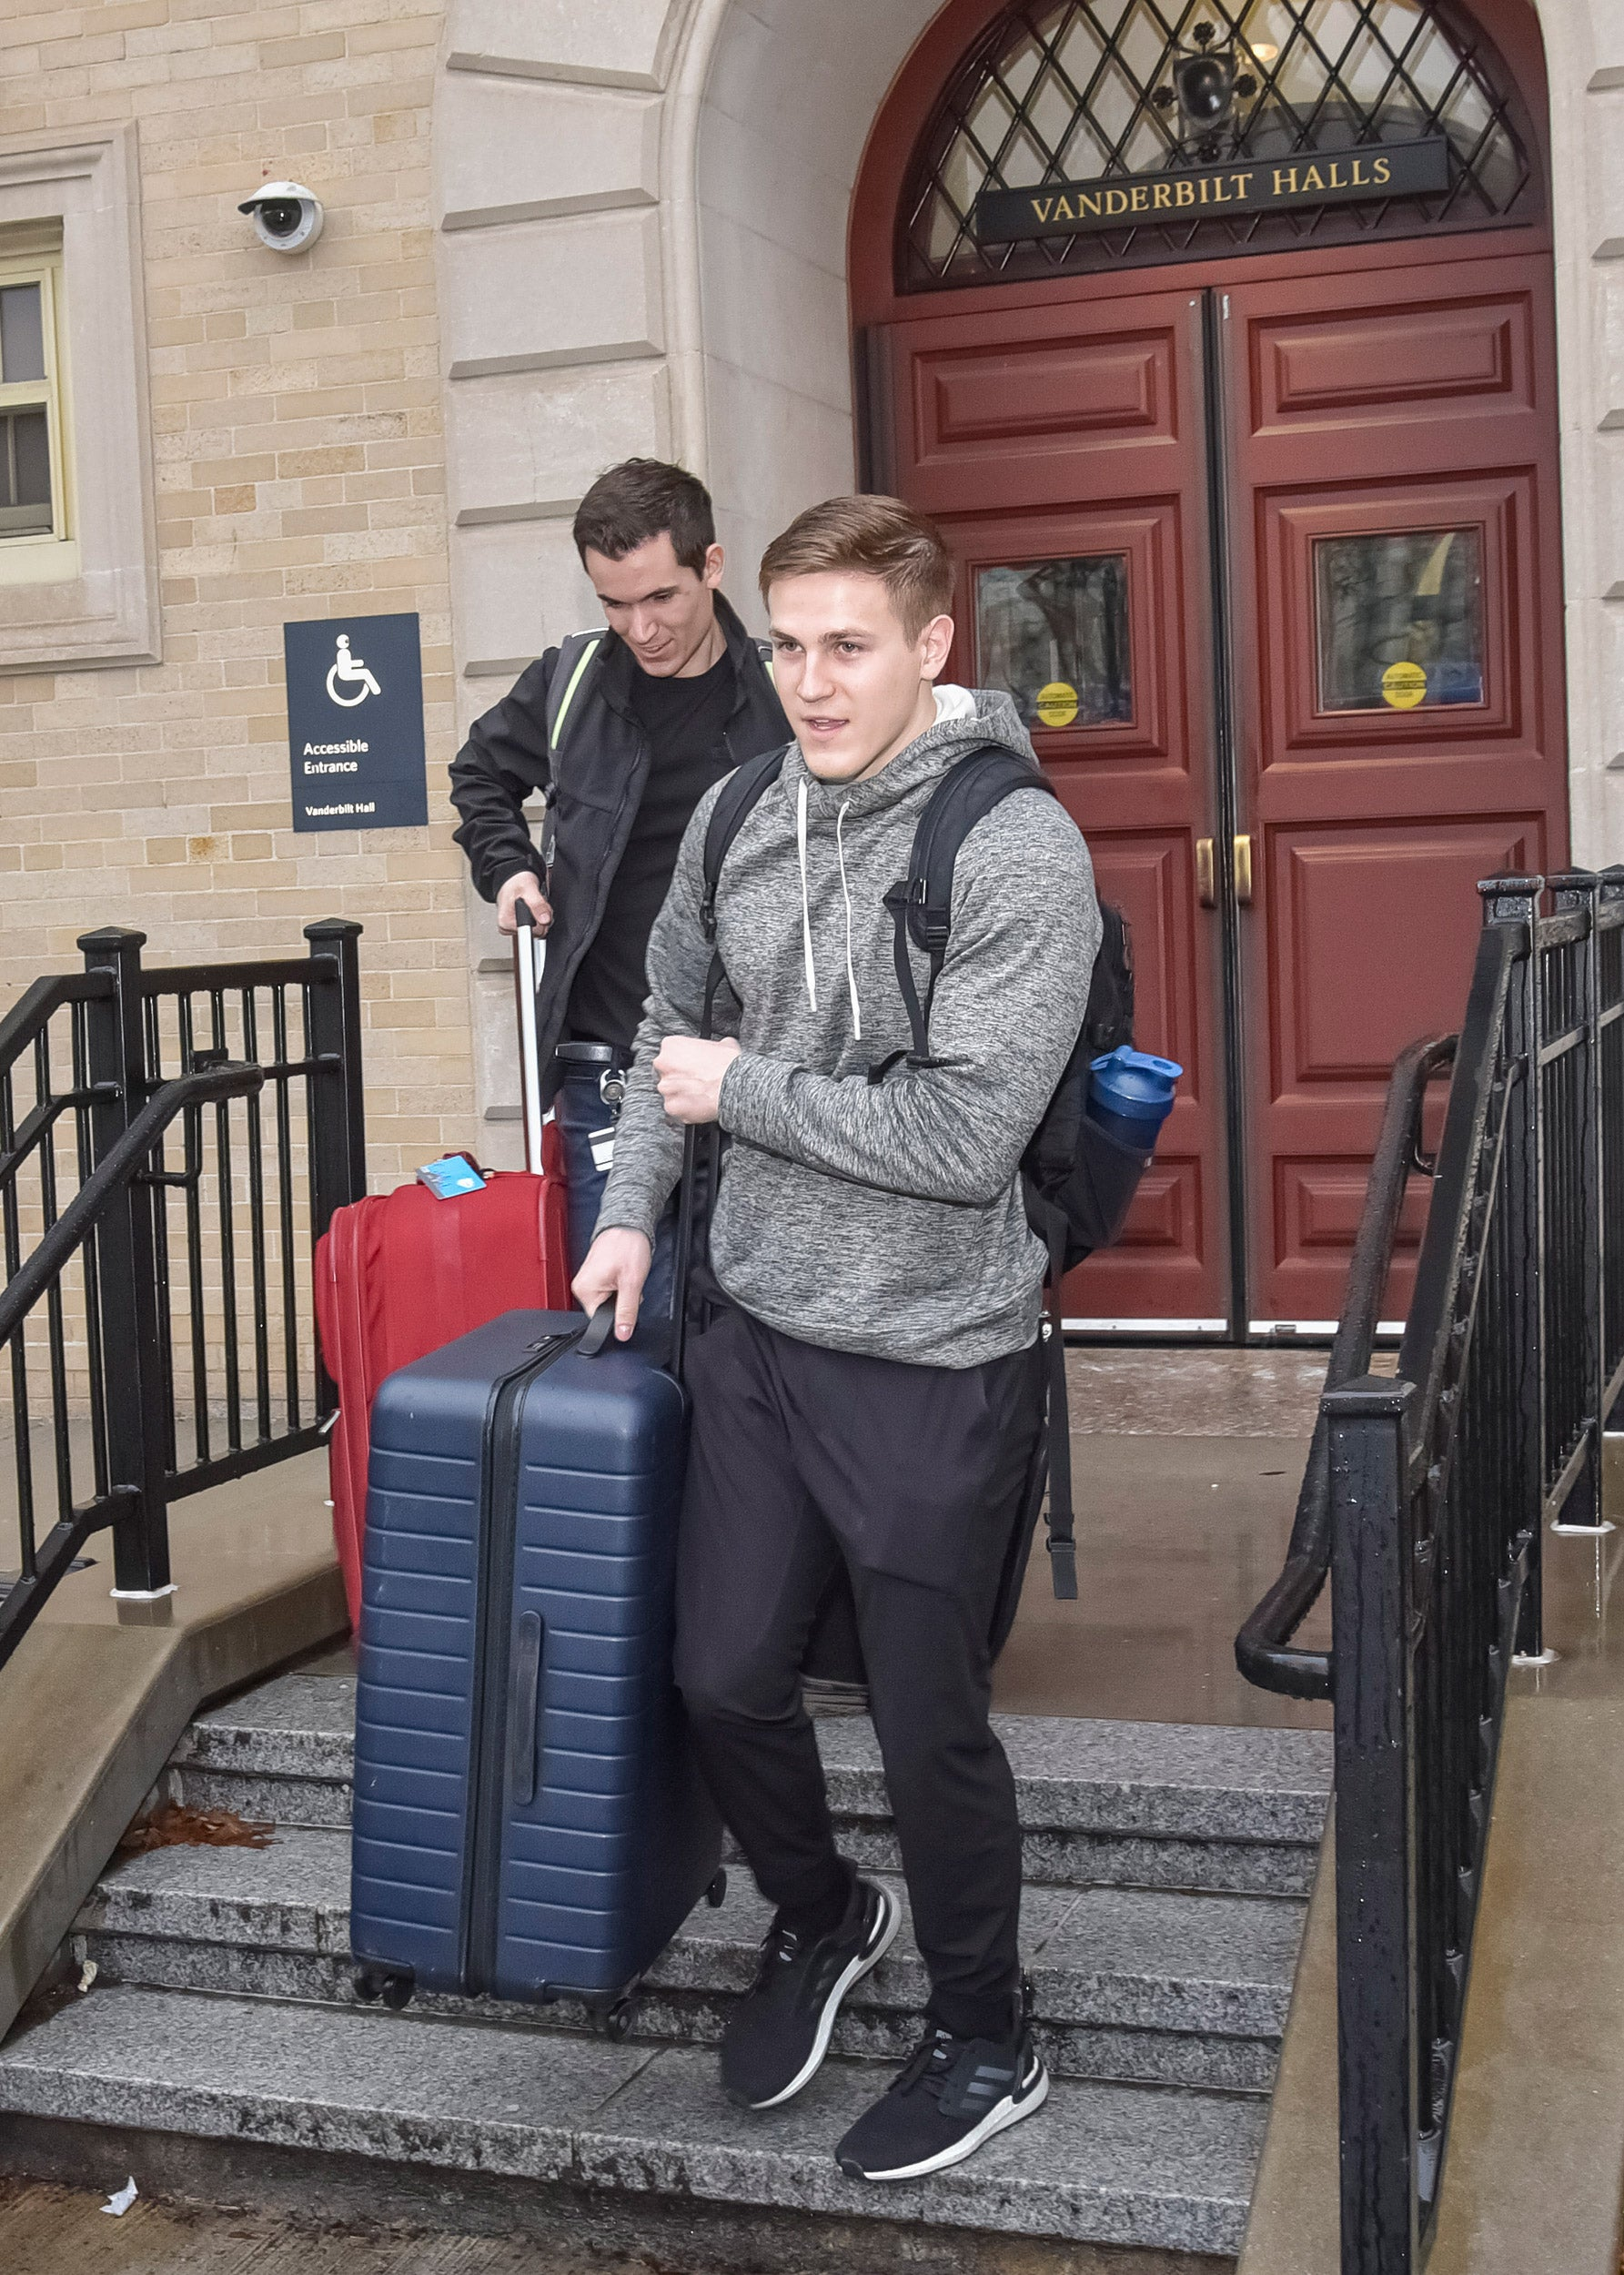 Two students with suitcases.